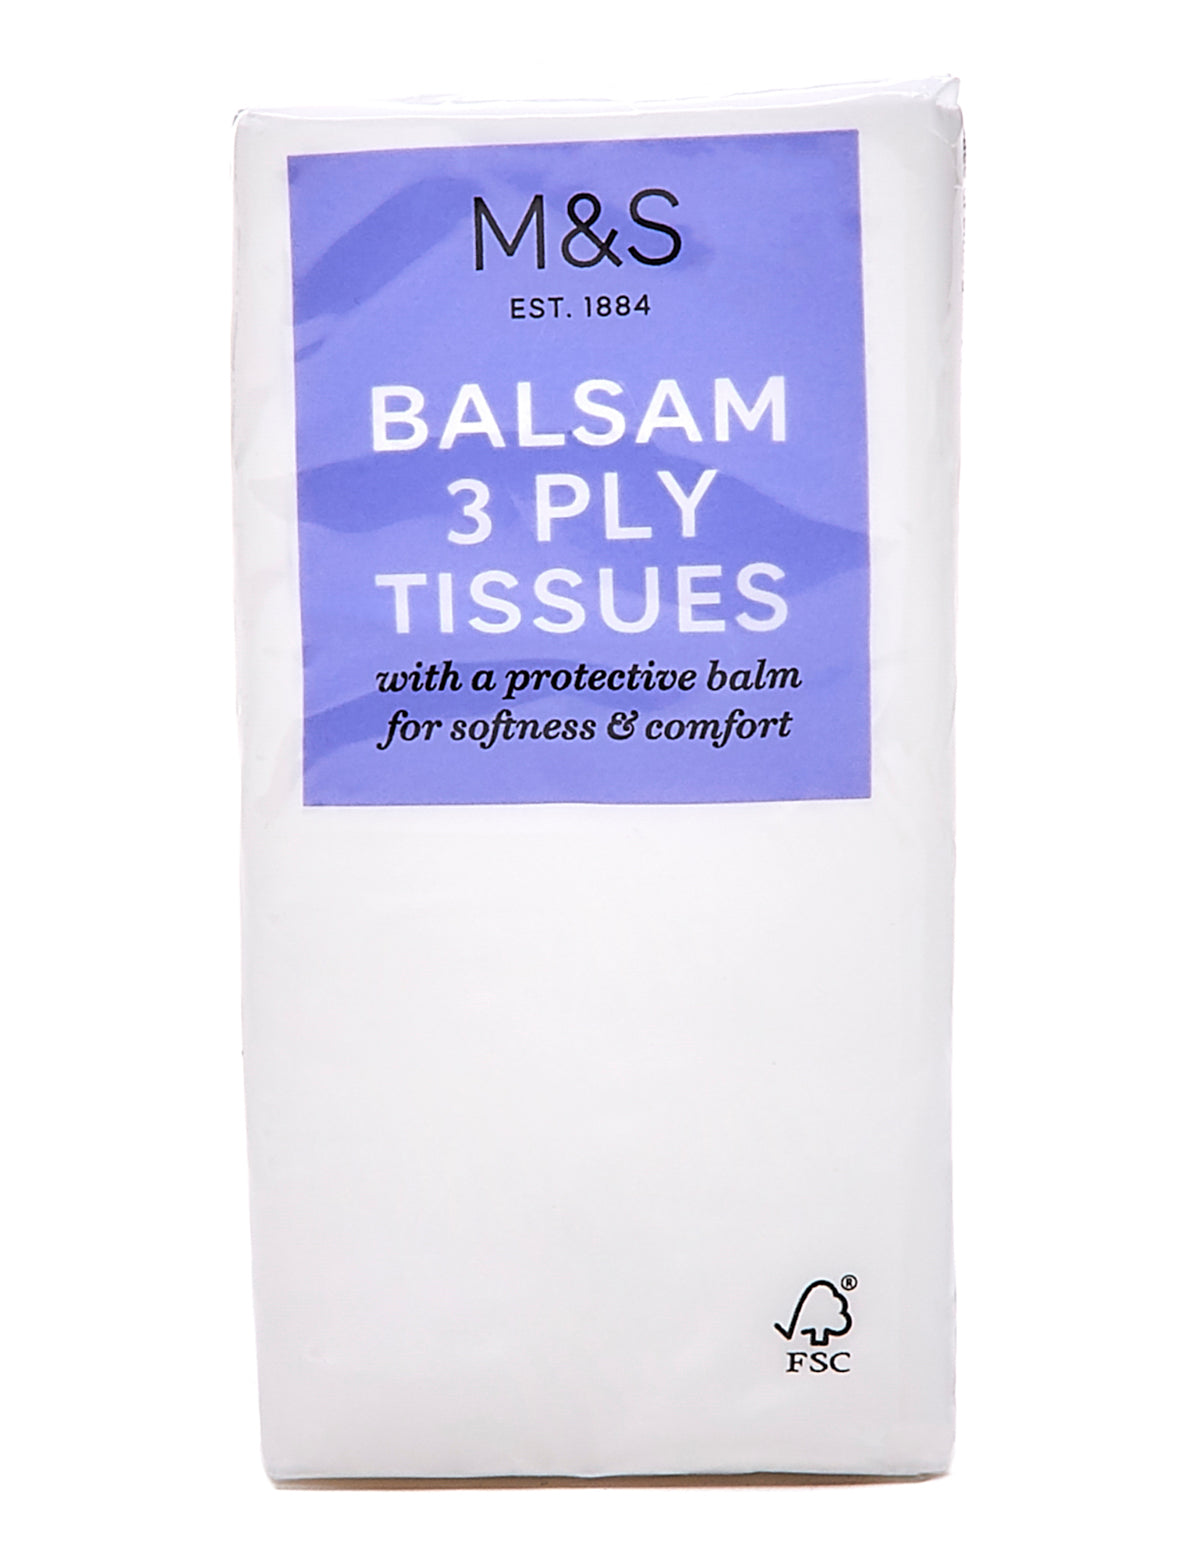 Balsam 3 Ply Tissues